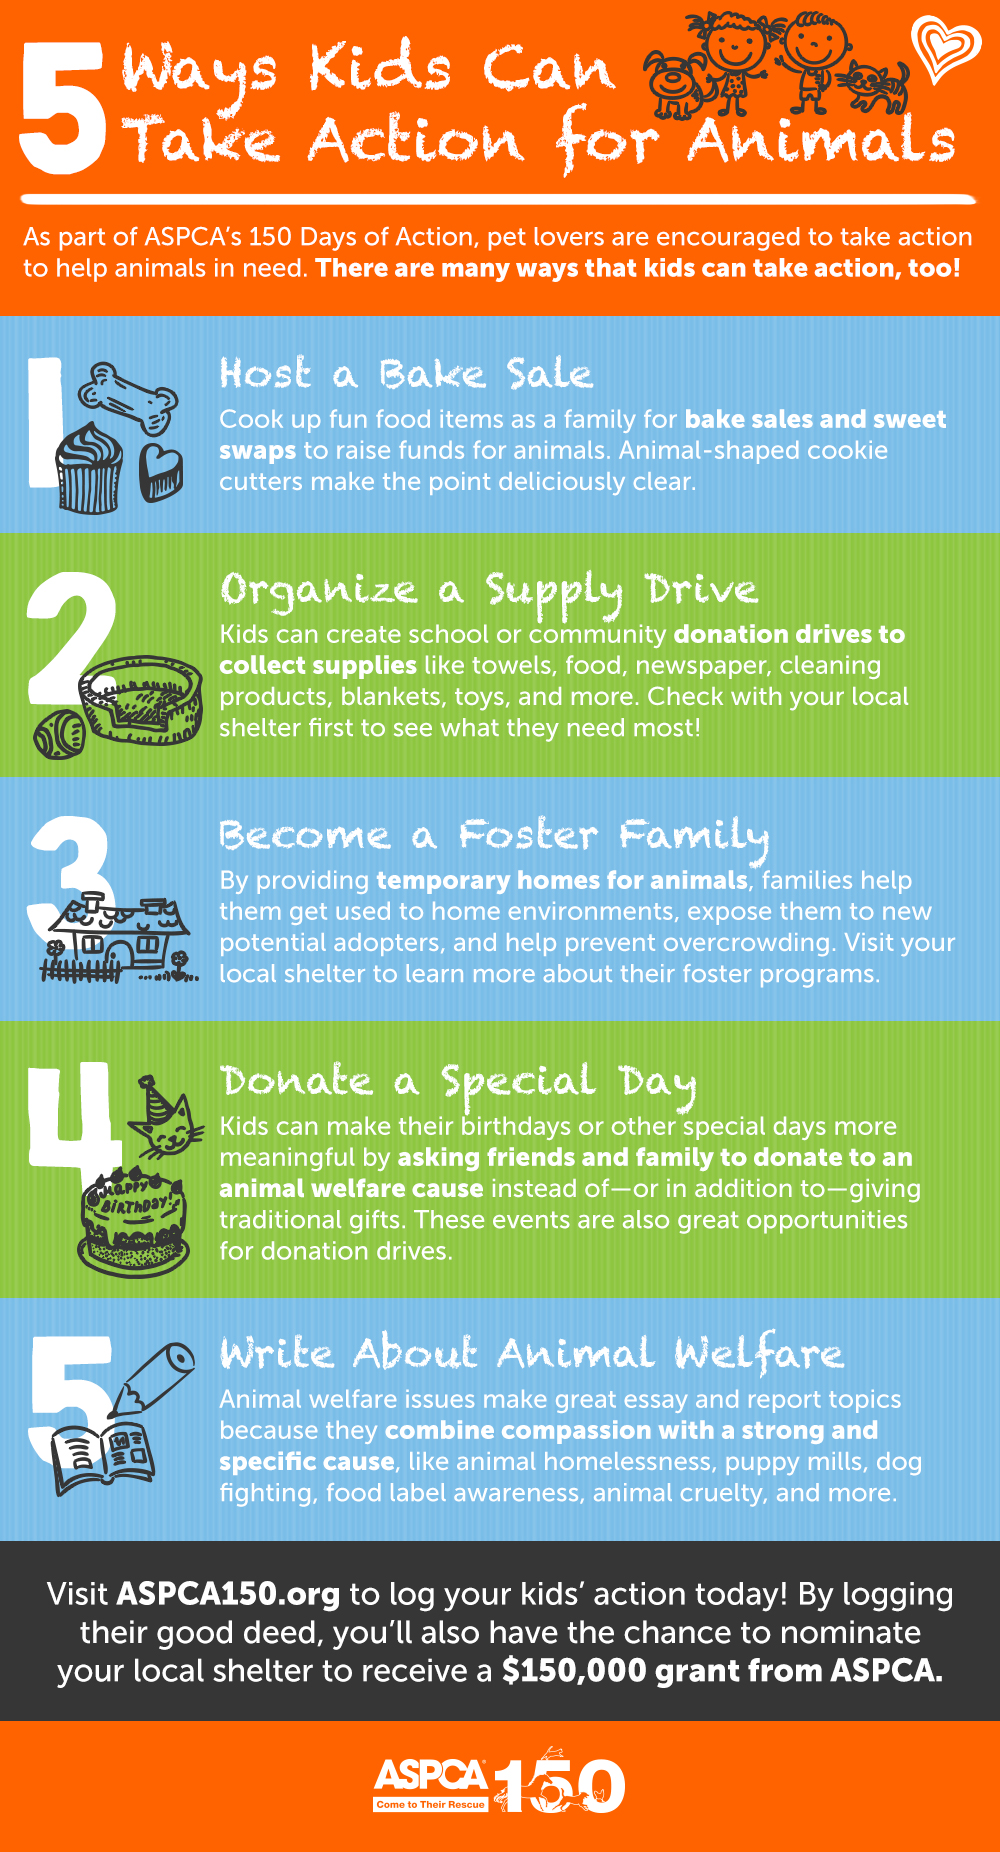 5 Ways Kids Can Take Action for Animals! #ASPCA150